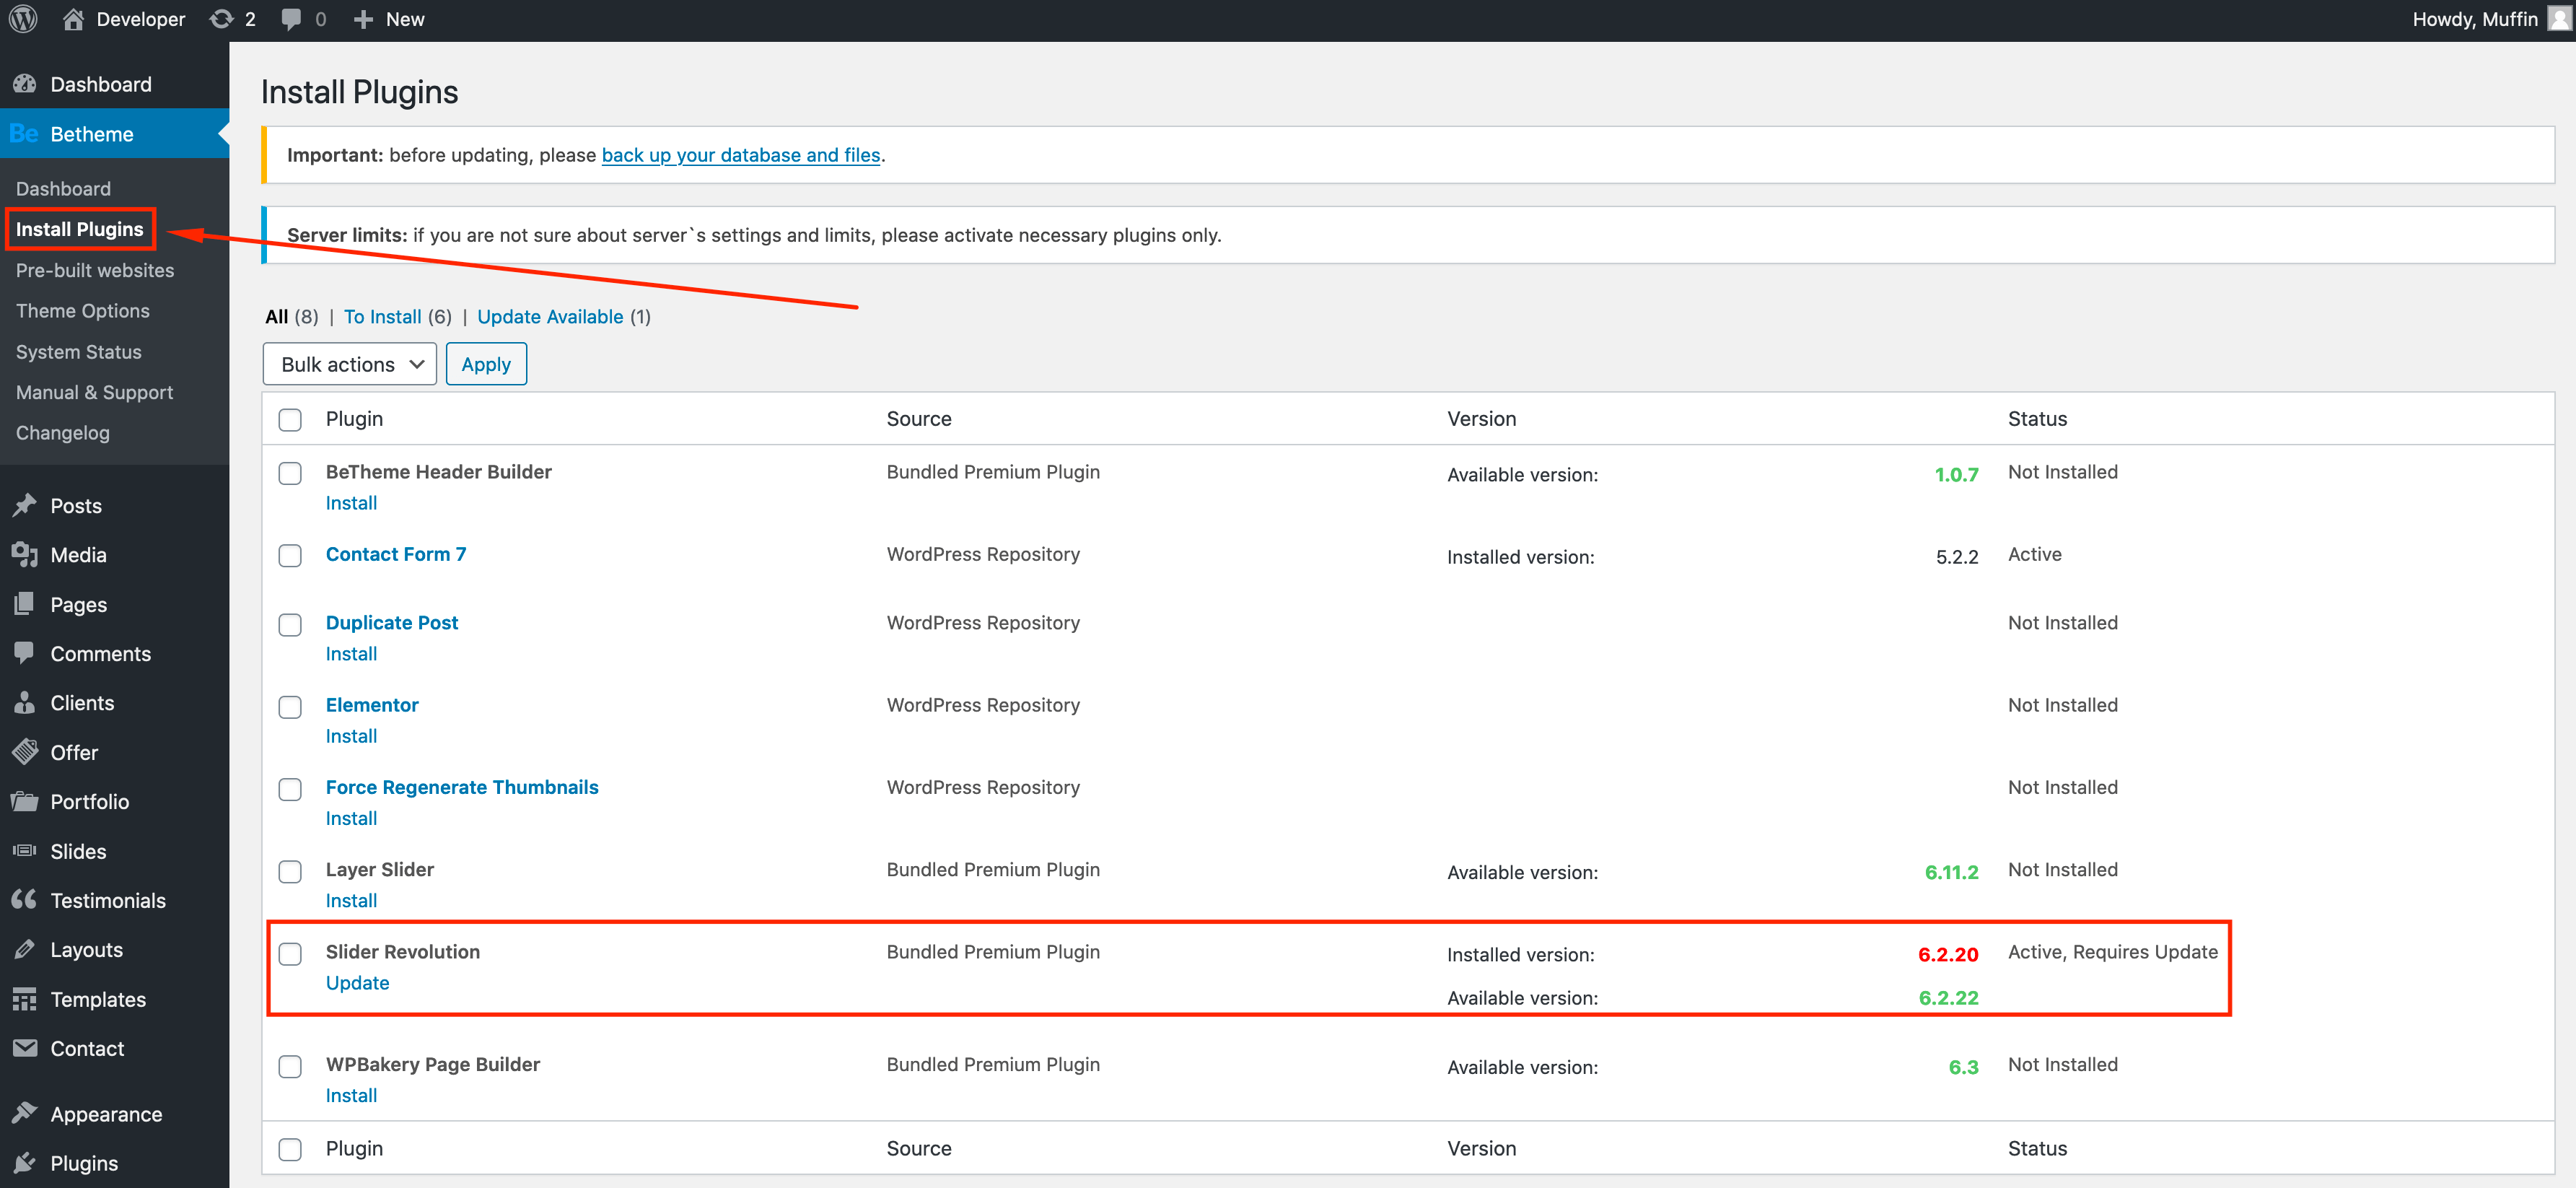 install plugins section